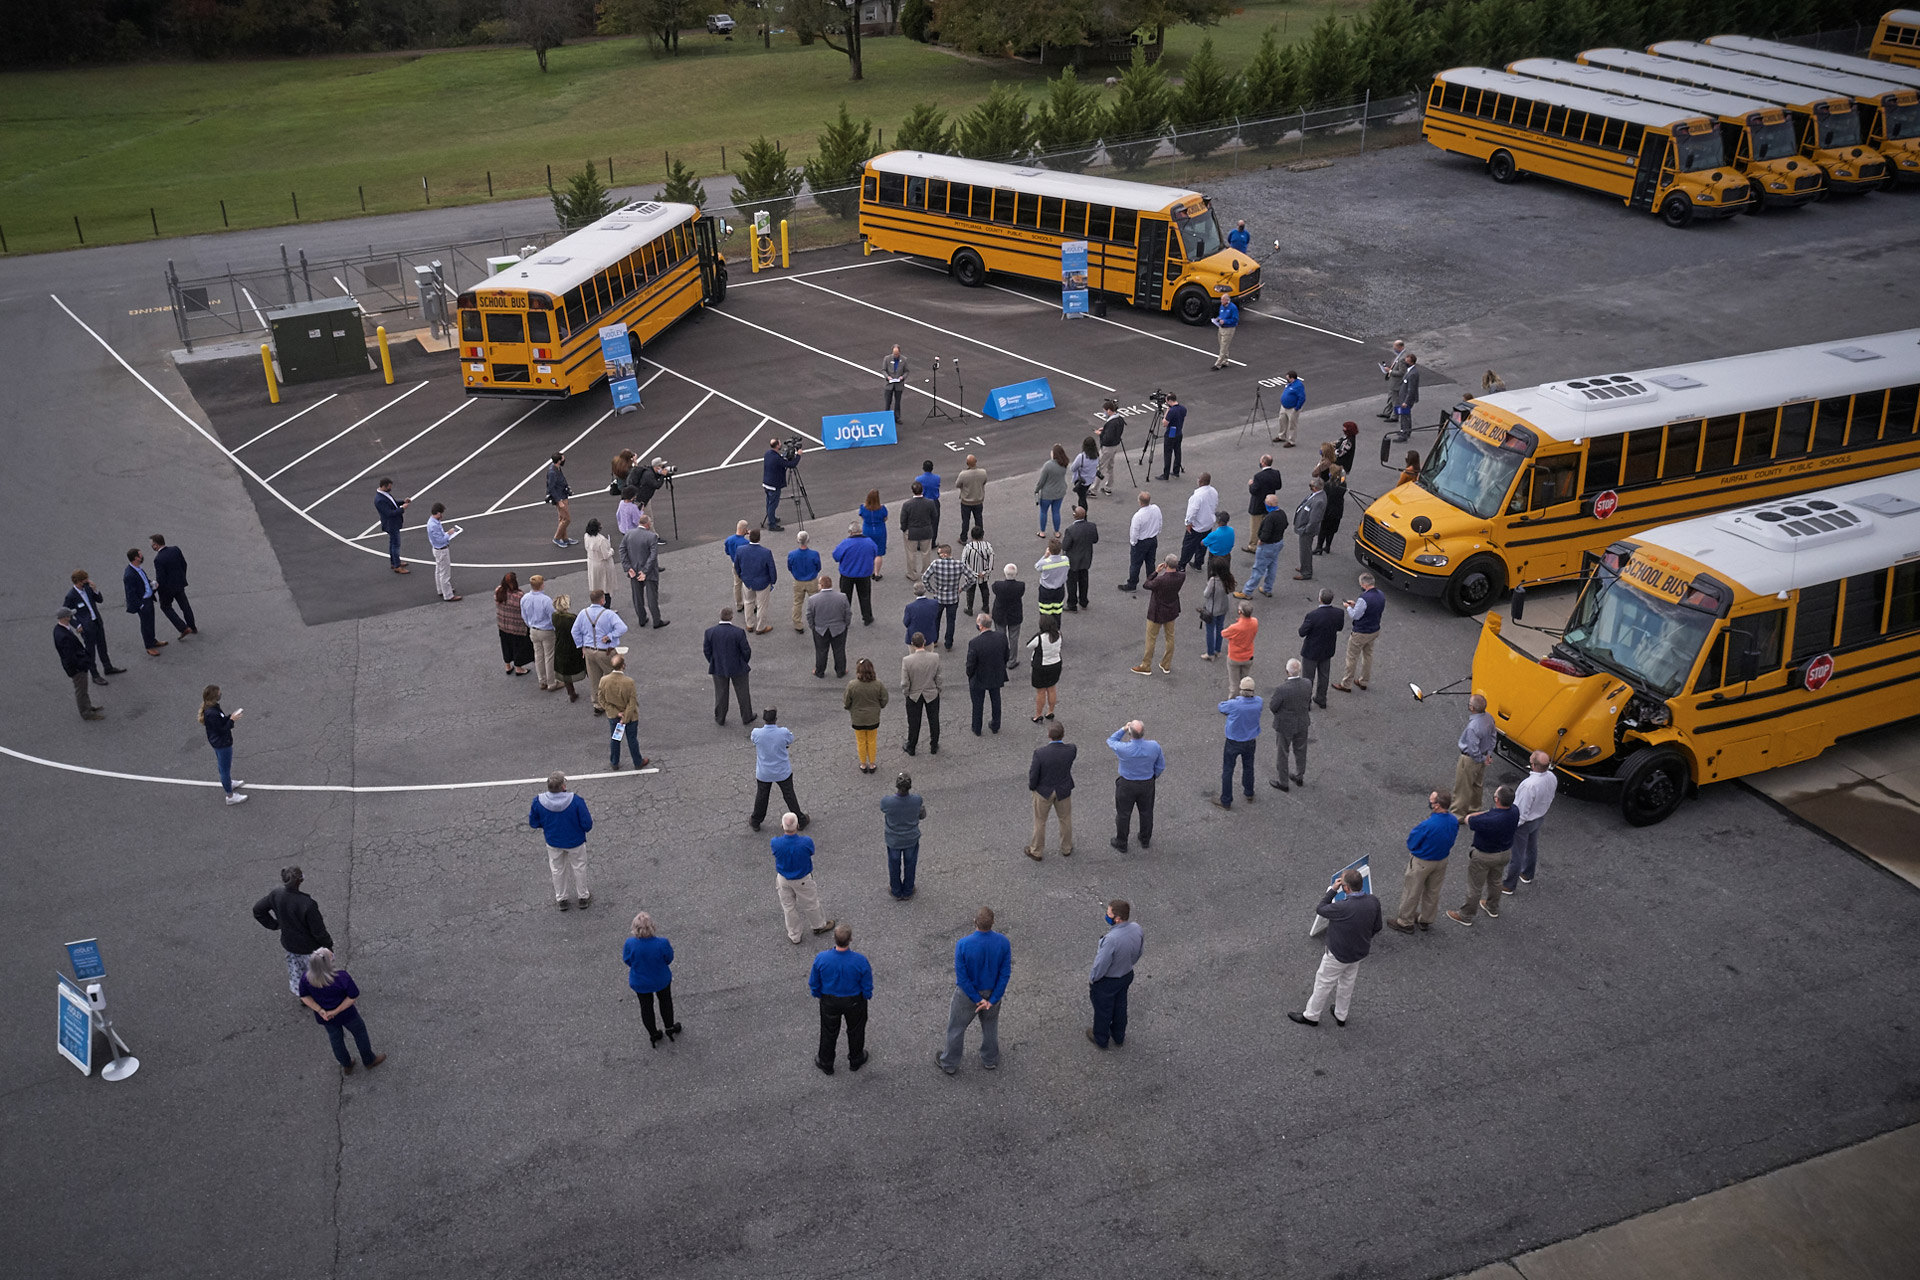 Representatives from Thomas Built Buses, Proterra, Dominion Energy, Sonny Merryman, and the Commonwealth of Virginia gather to celebrate the delivery of the first group of Saf-T-Liner C2 Jouley electric school buses delivered to Virginia schools as part of phase one of Dominion Energy's Electric School Bus Initiative.